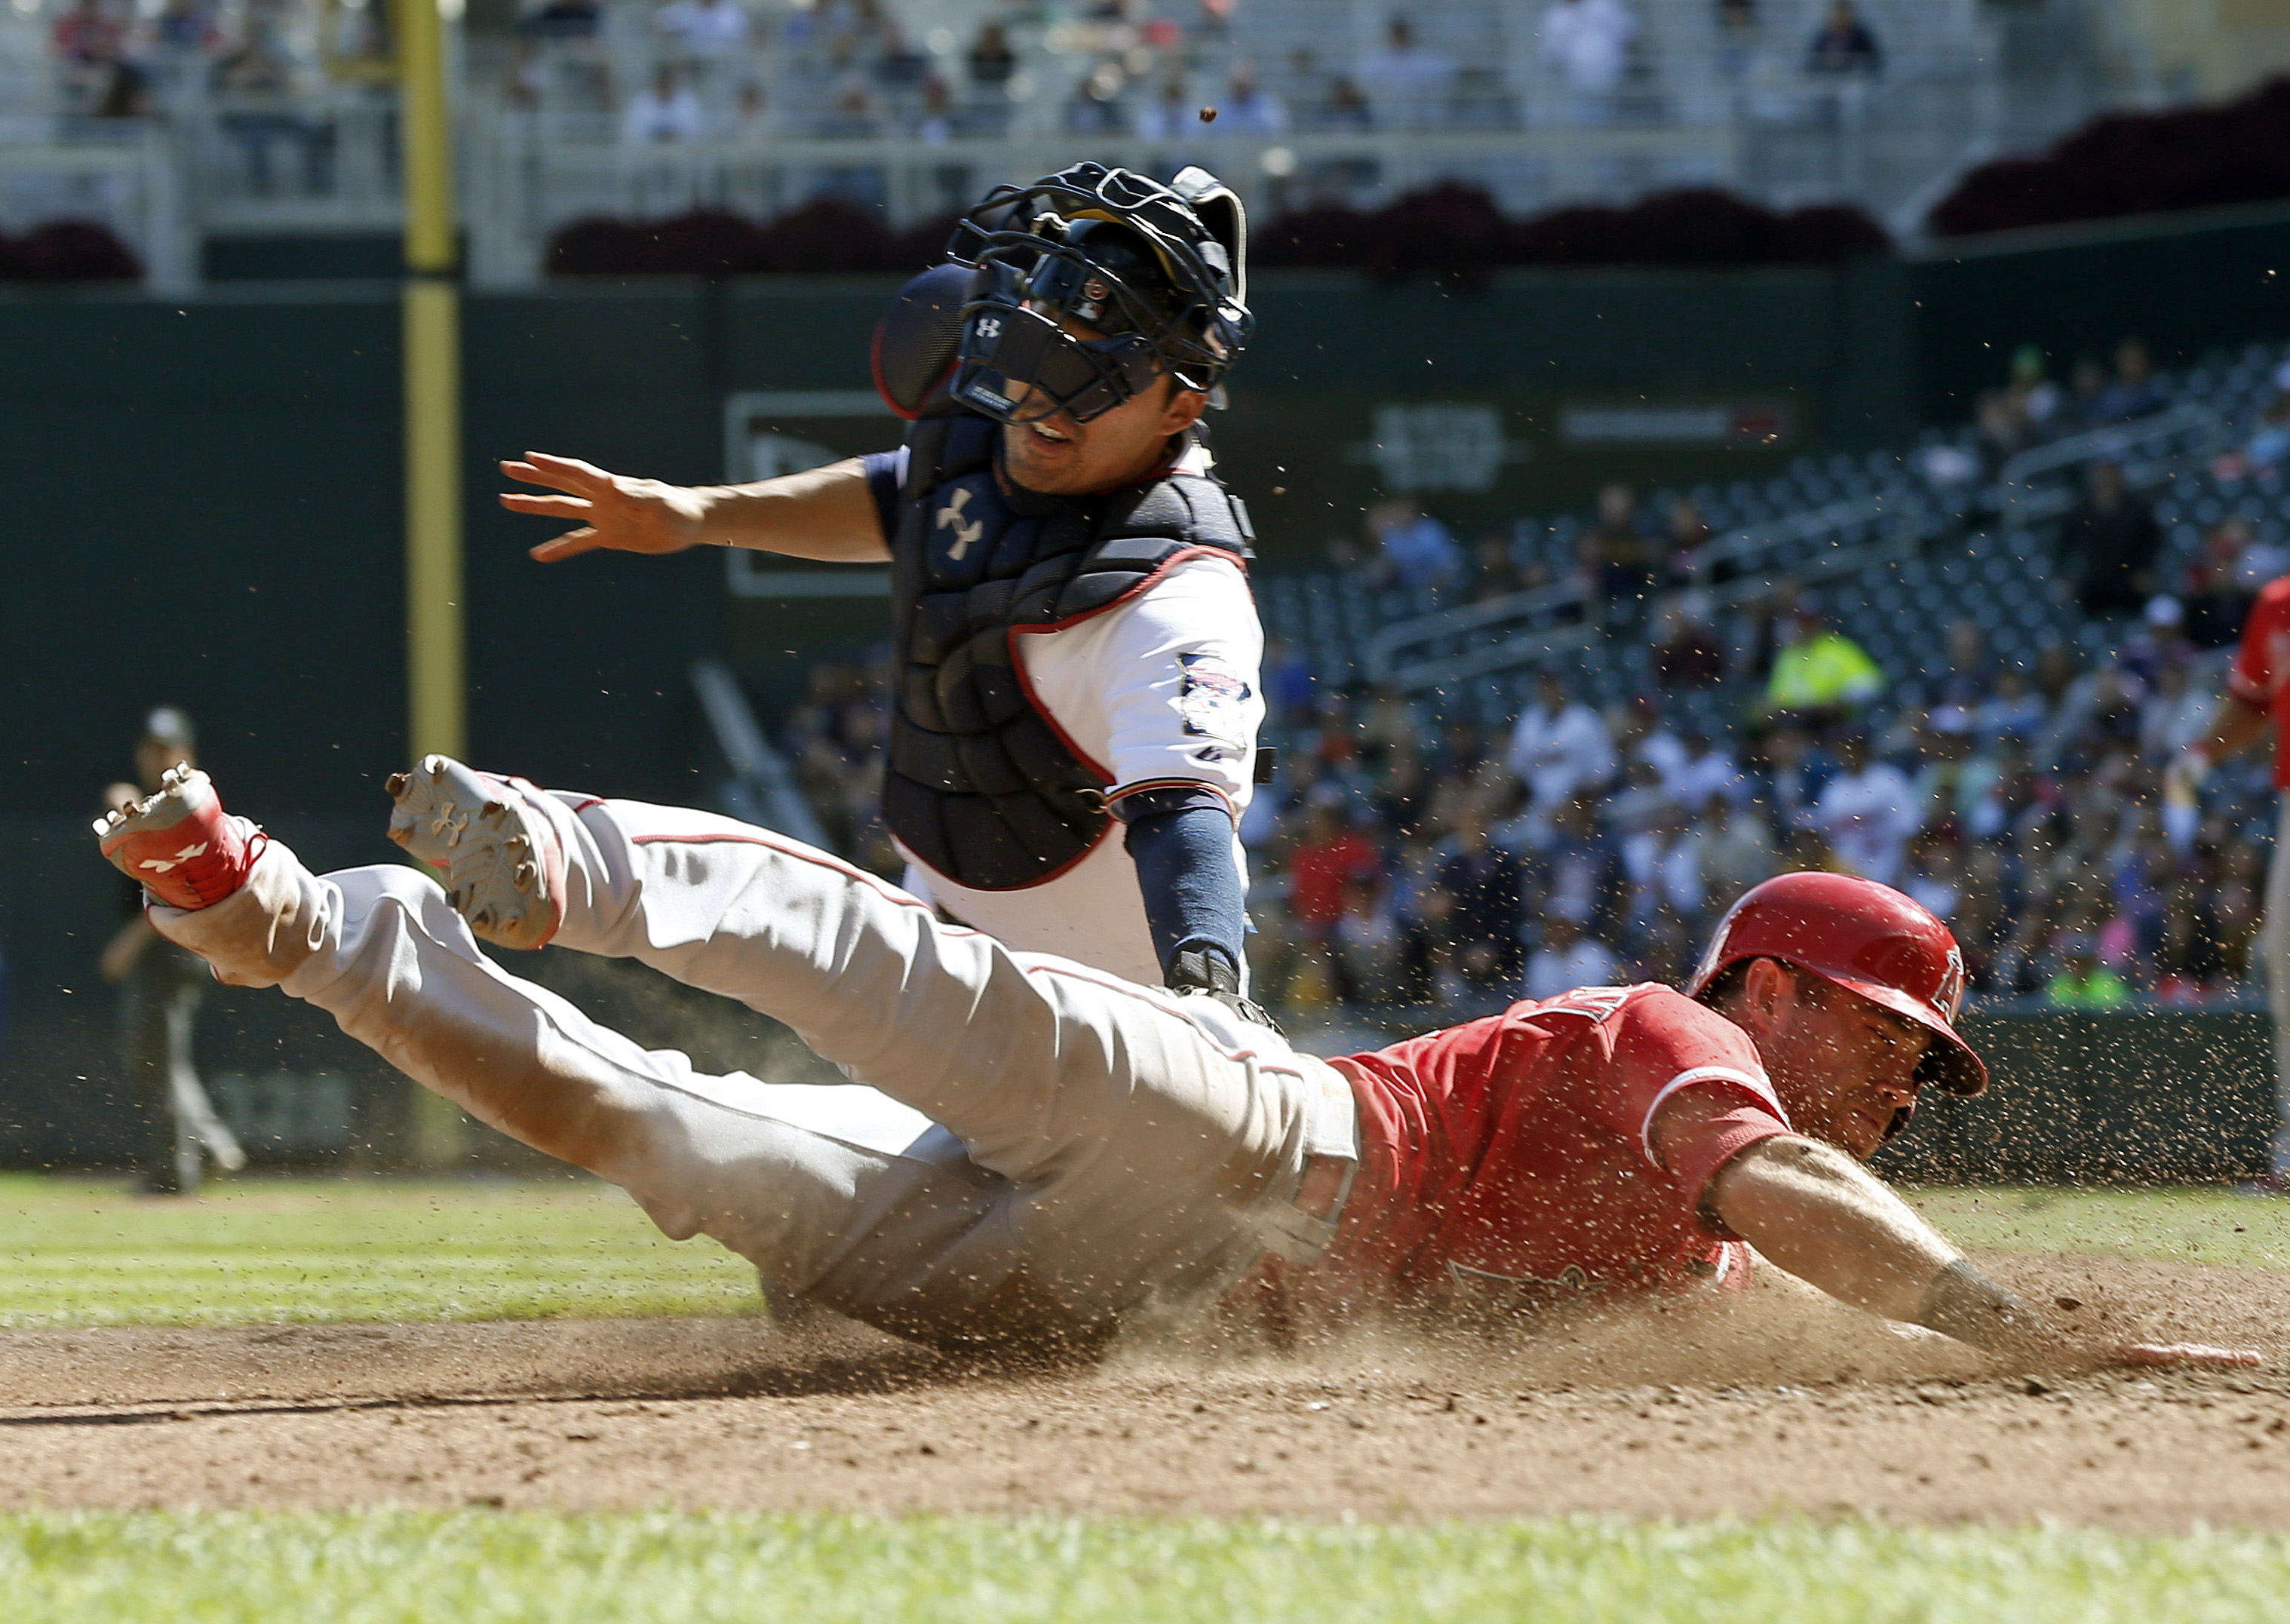 Los Angeles Angels' Taylor Featherston, right, beats the tag by Minnesota Twins catcher Kurt Suzuki to score in the sixth inning of Game 1 of a split doubleheader baseball game, Saturday, Sept. 19, 2015, in Minneapolis. (AP Photo/Jim Mone)